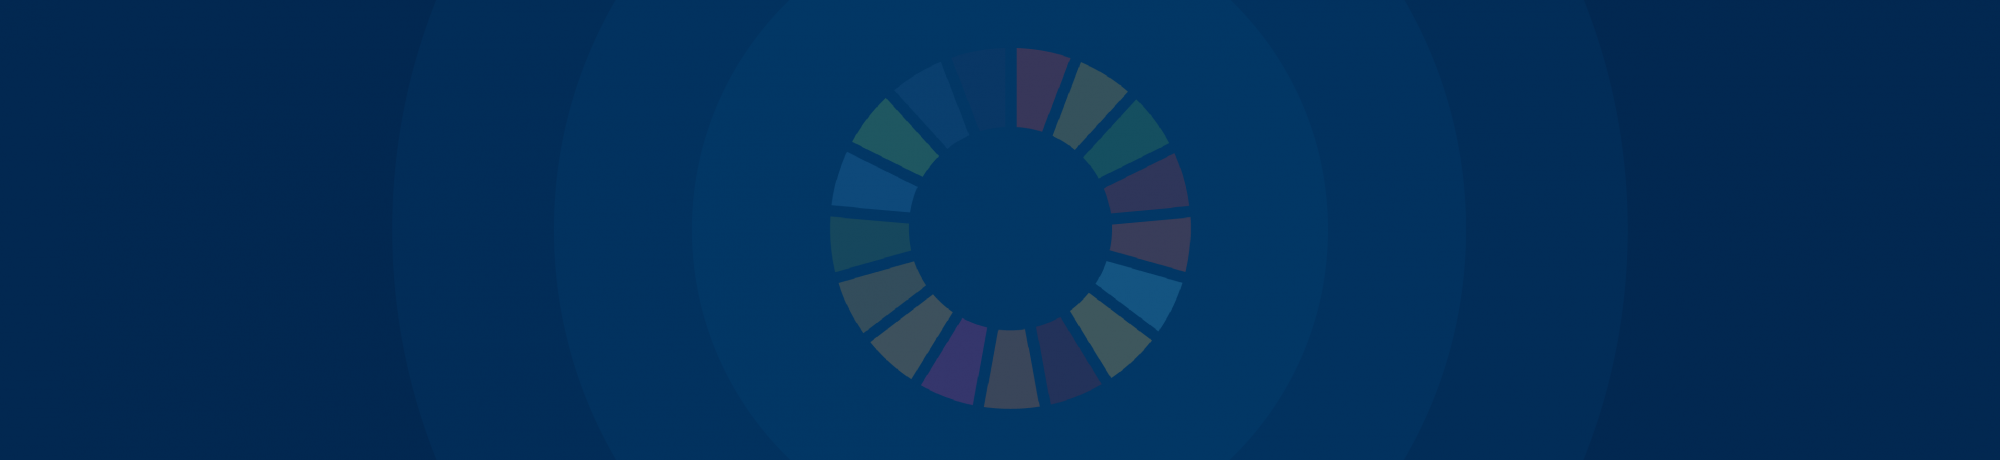 Blue banner with SDG wheel